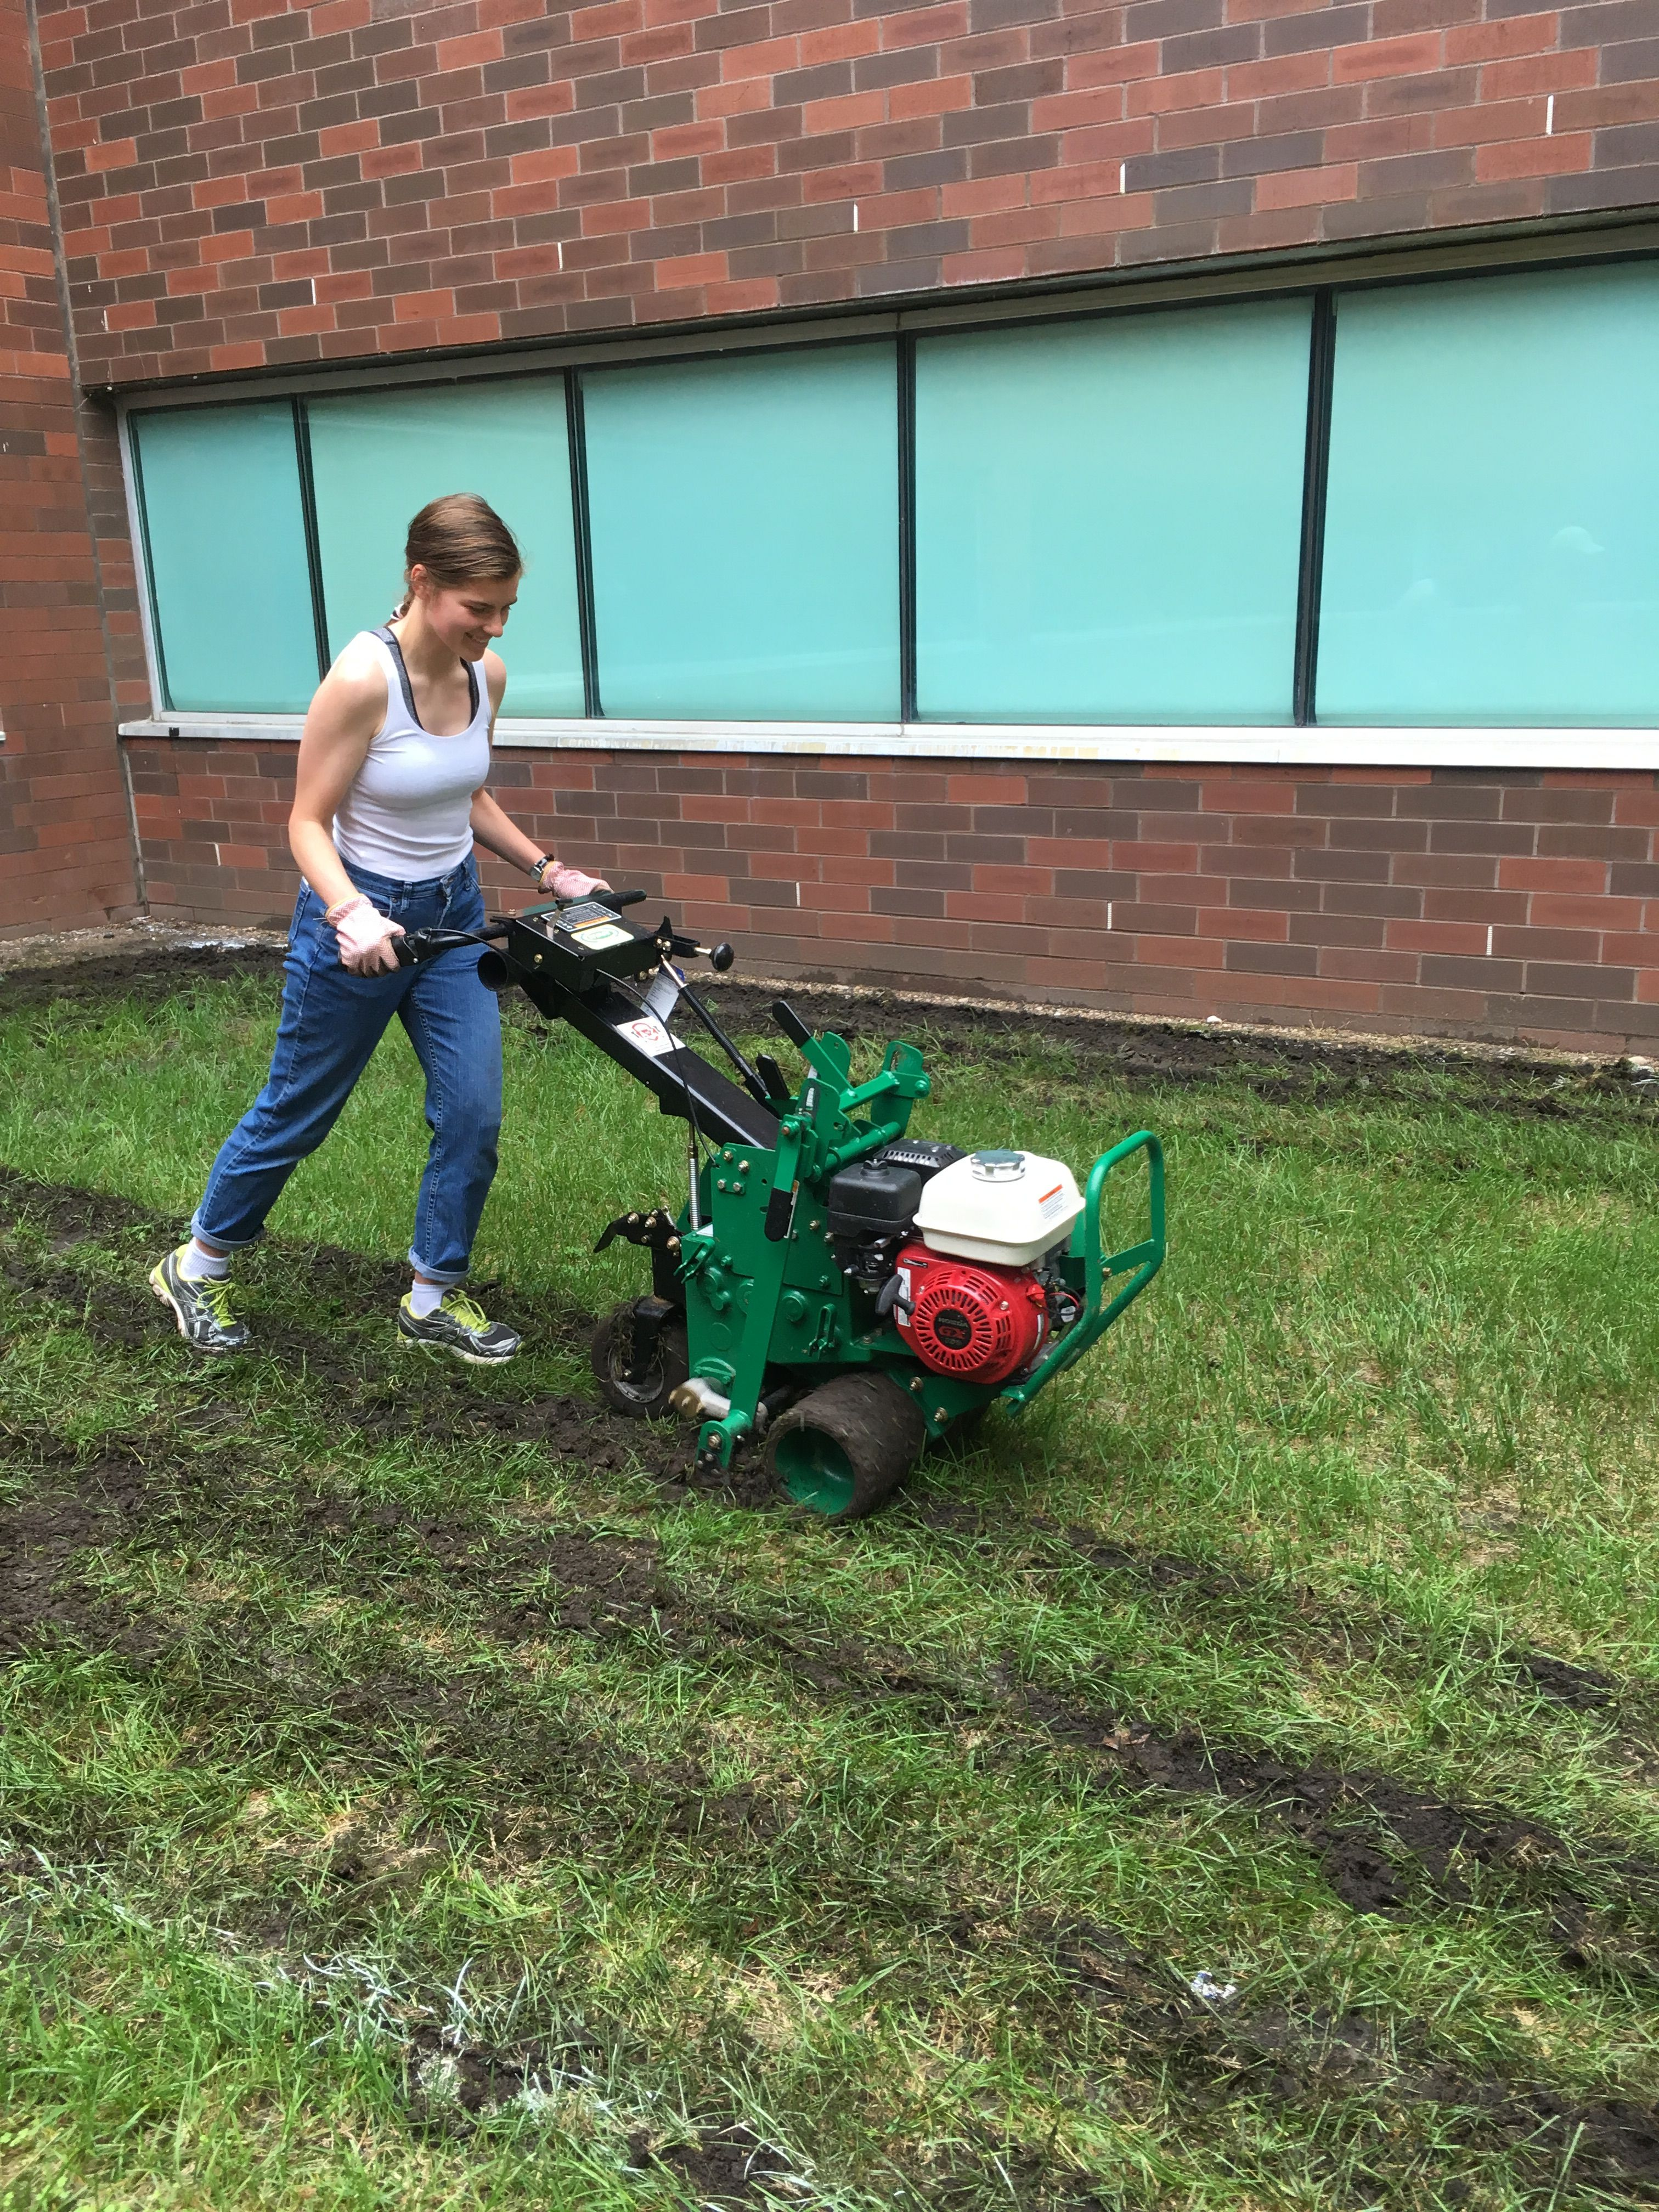 An adult using a gas-powered sod cutter to remove turfgrass.